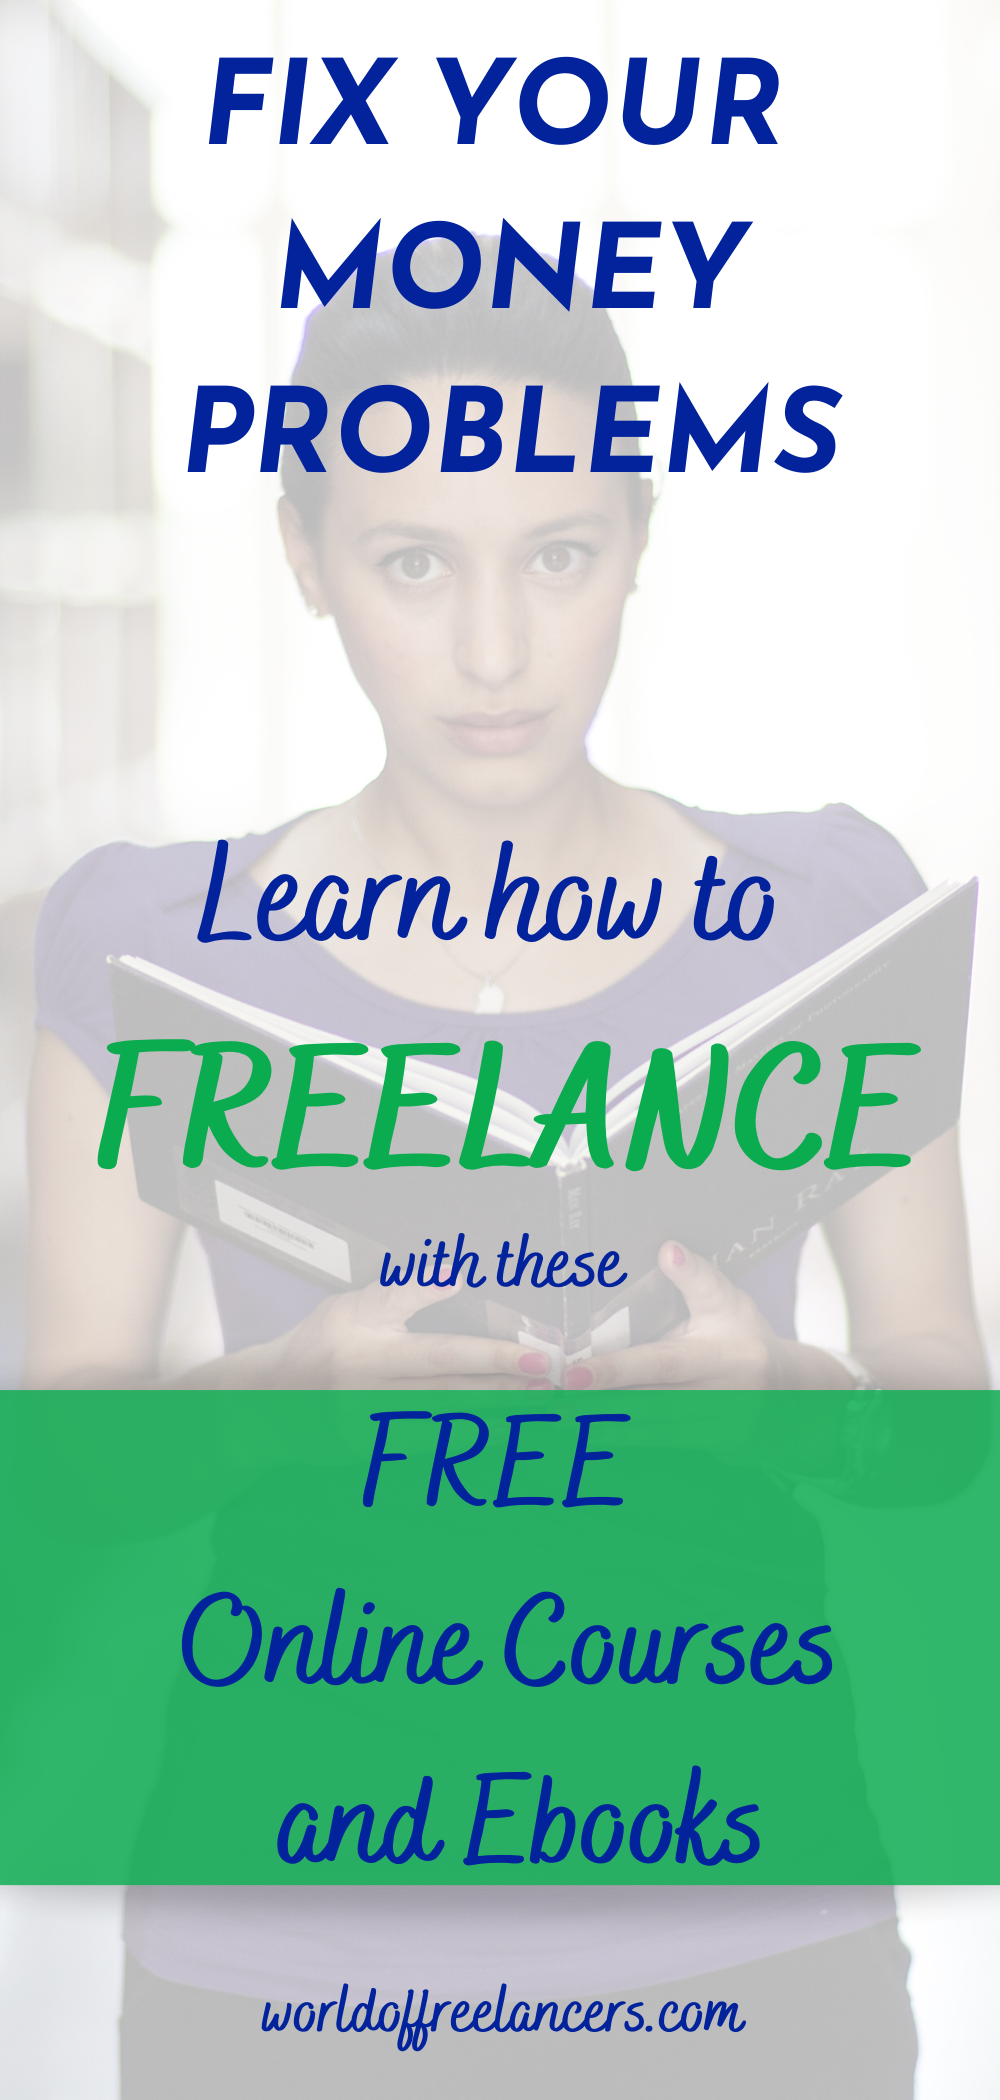 Fix your money problems - learn how to freelance with these free online courses Pinterest iamge